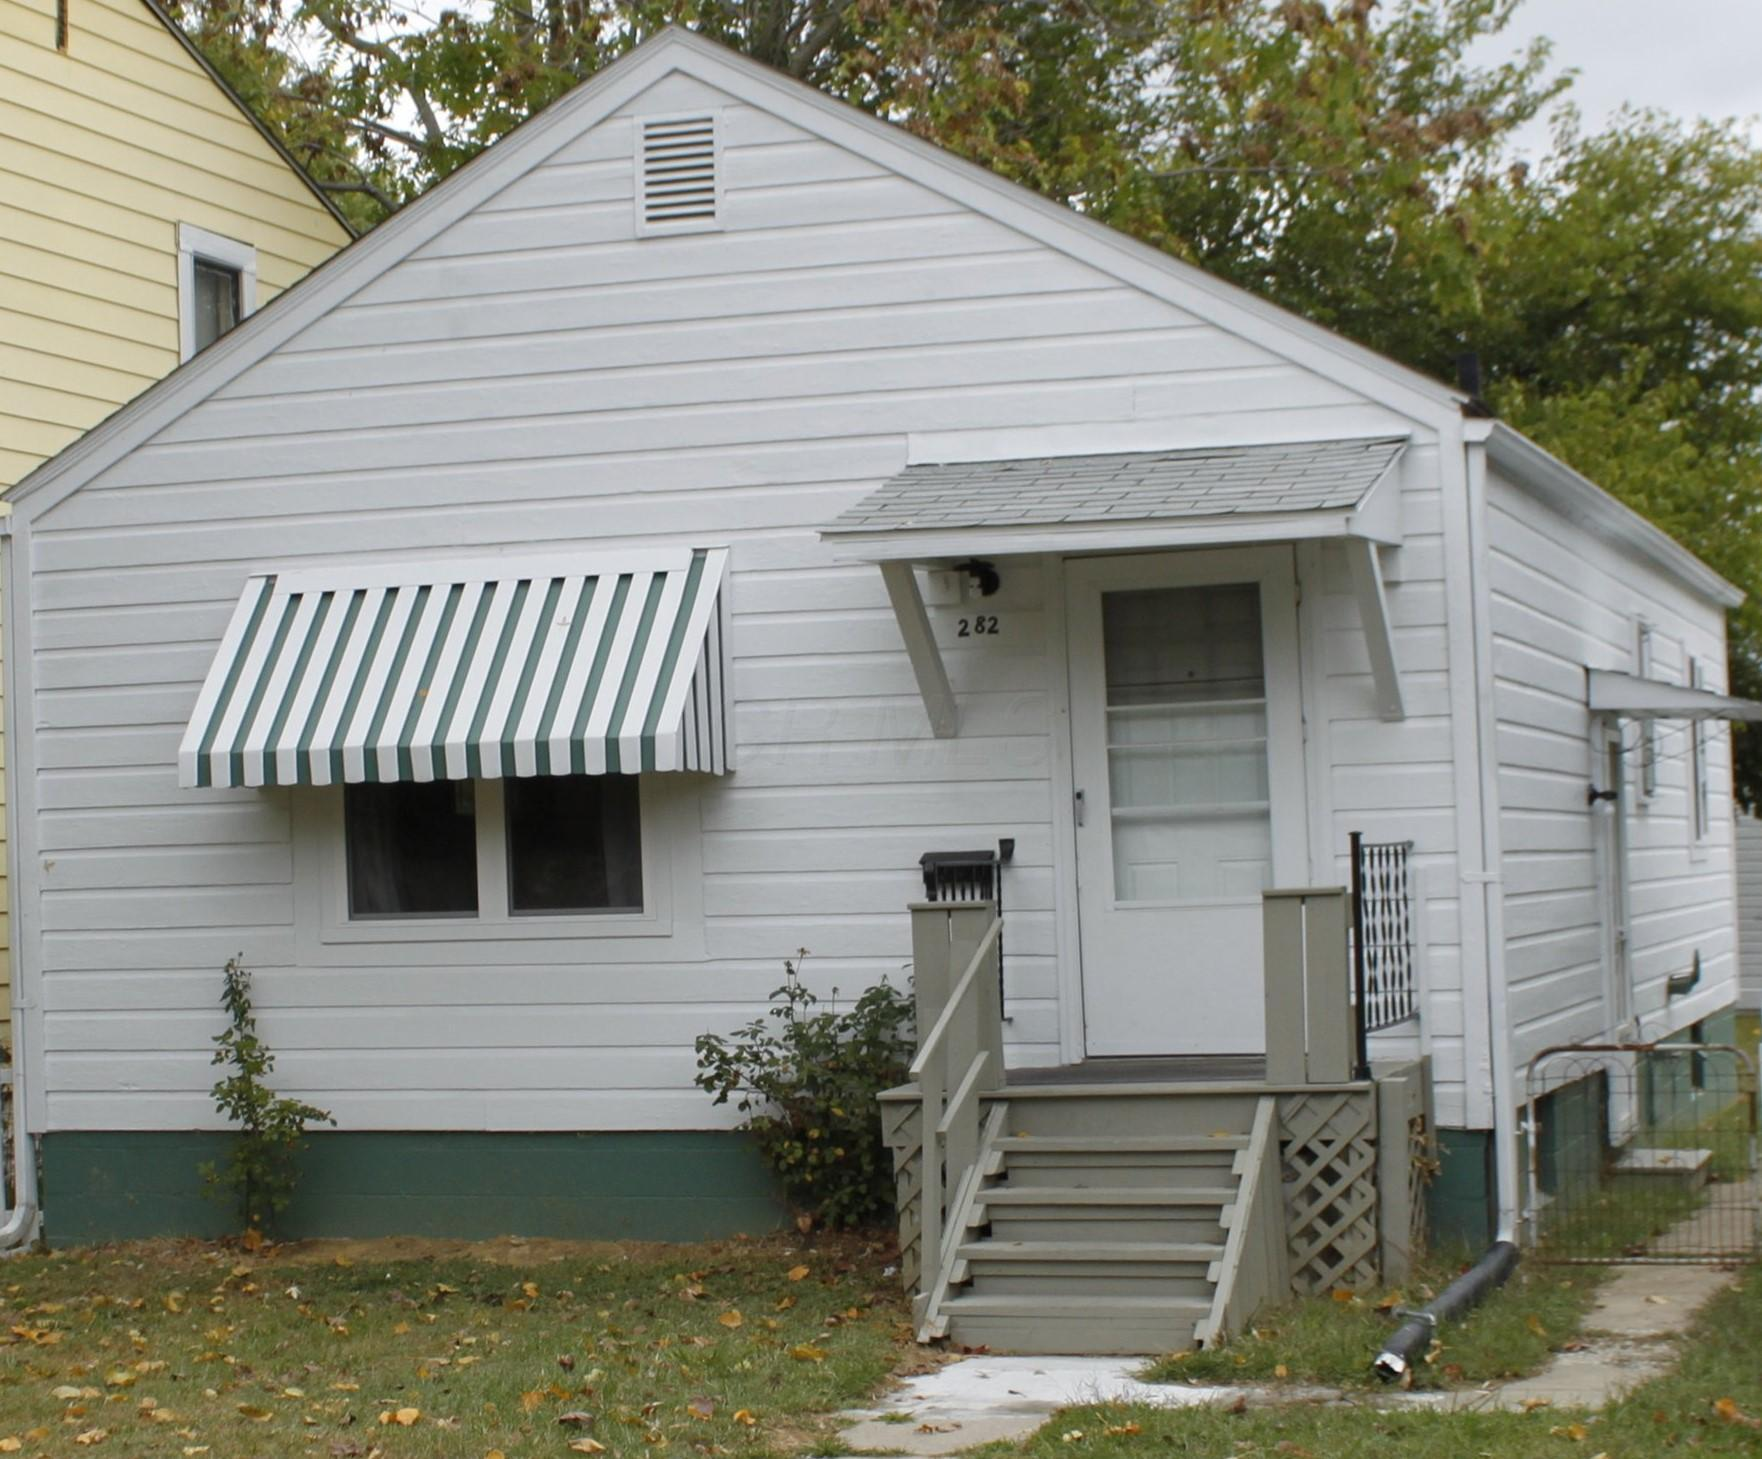 Property for sale at 282 S Terrace Avenue, Columbus,  Ohio 43204